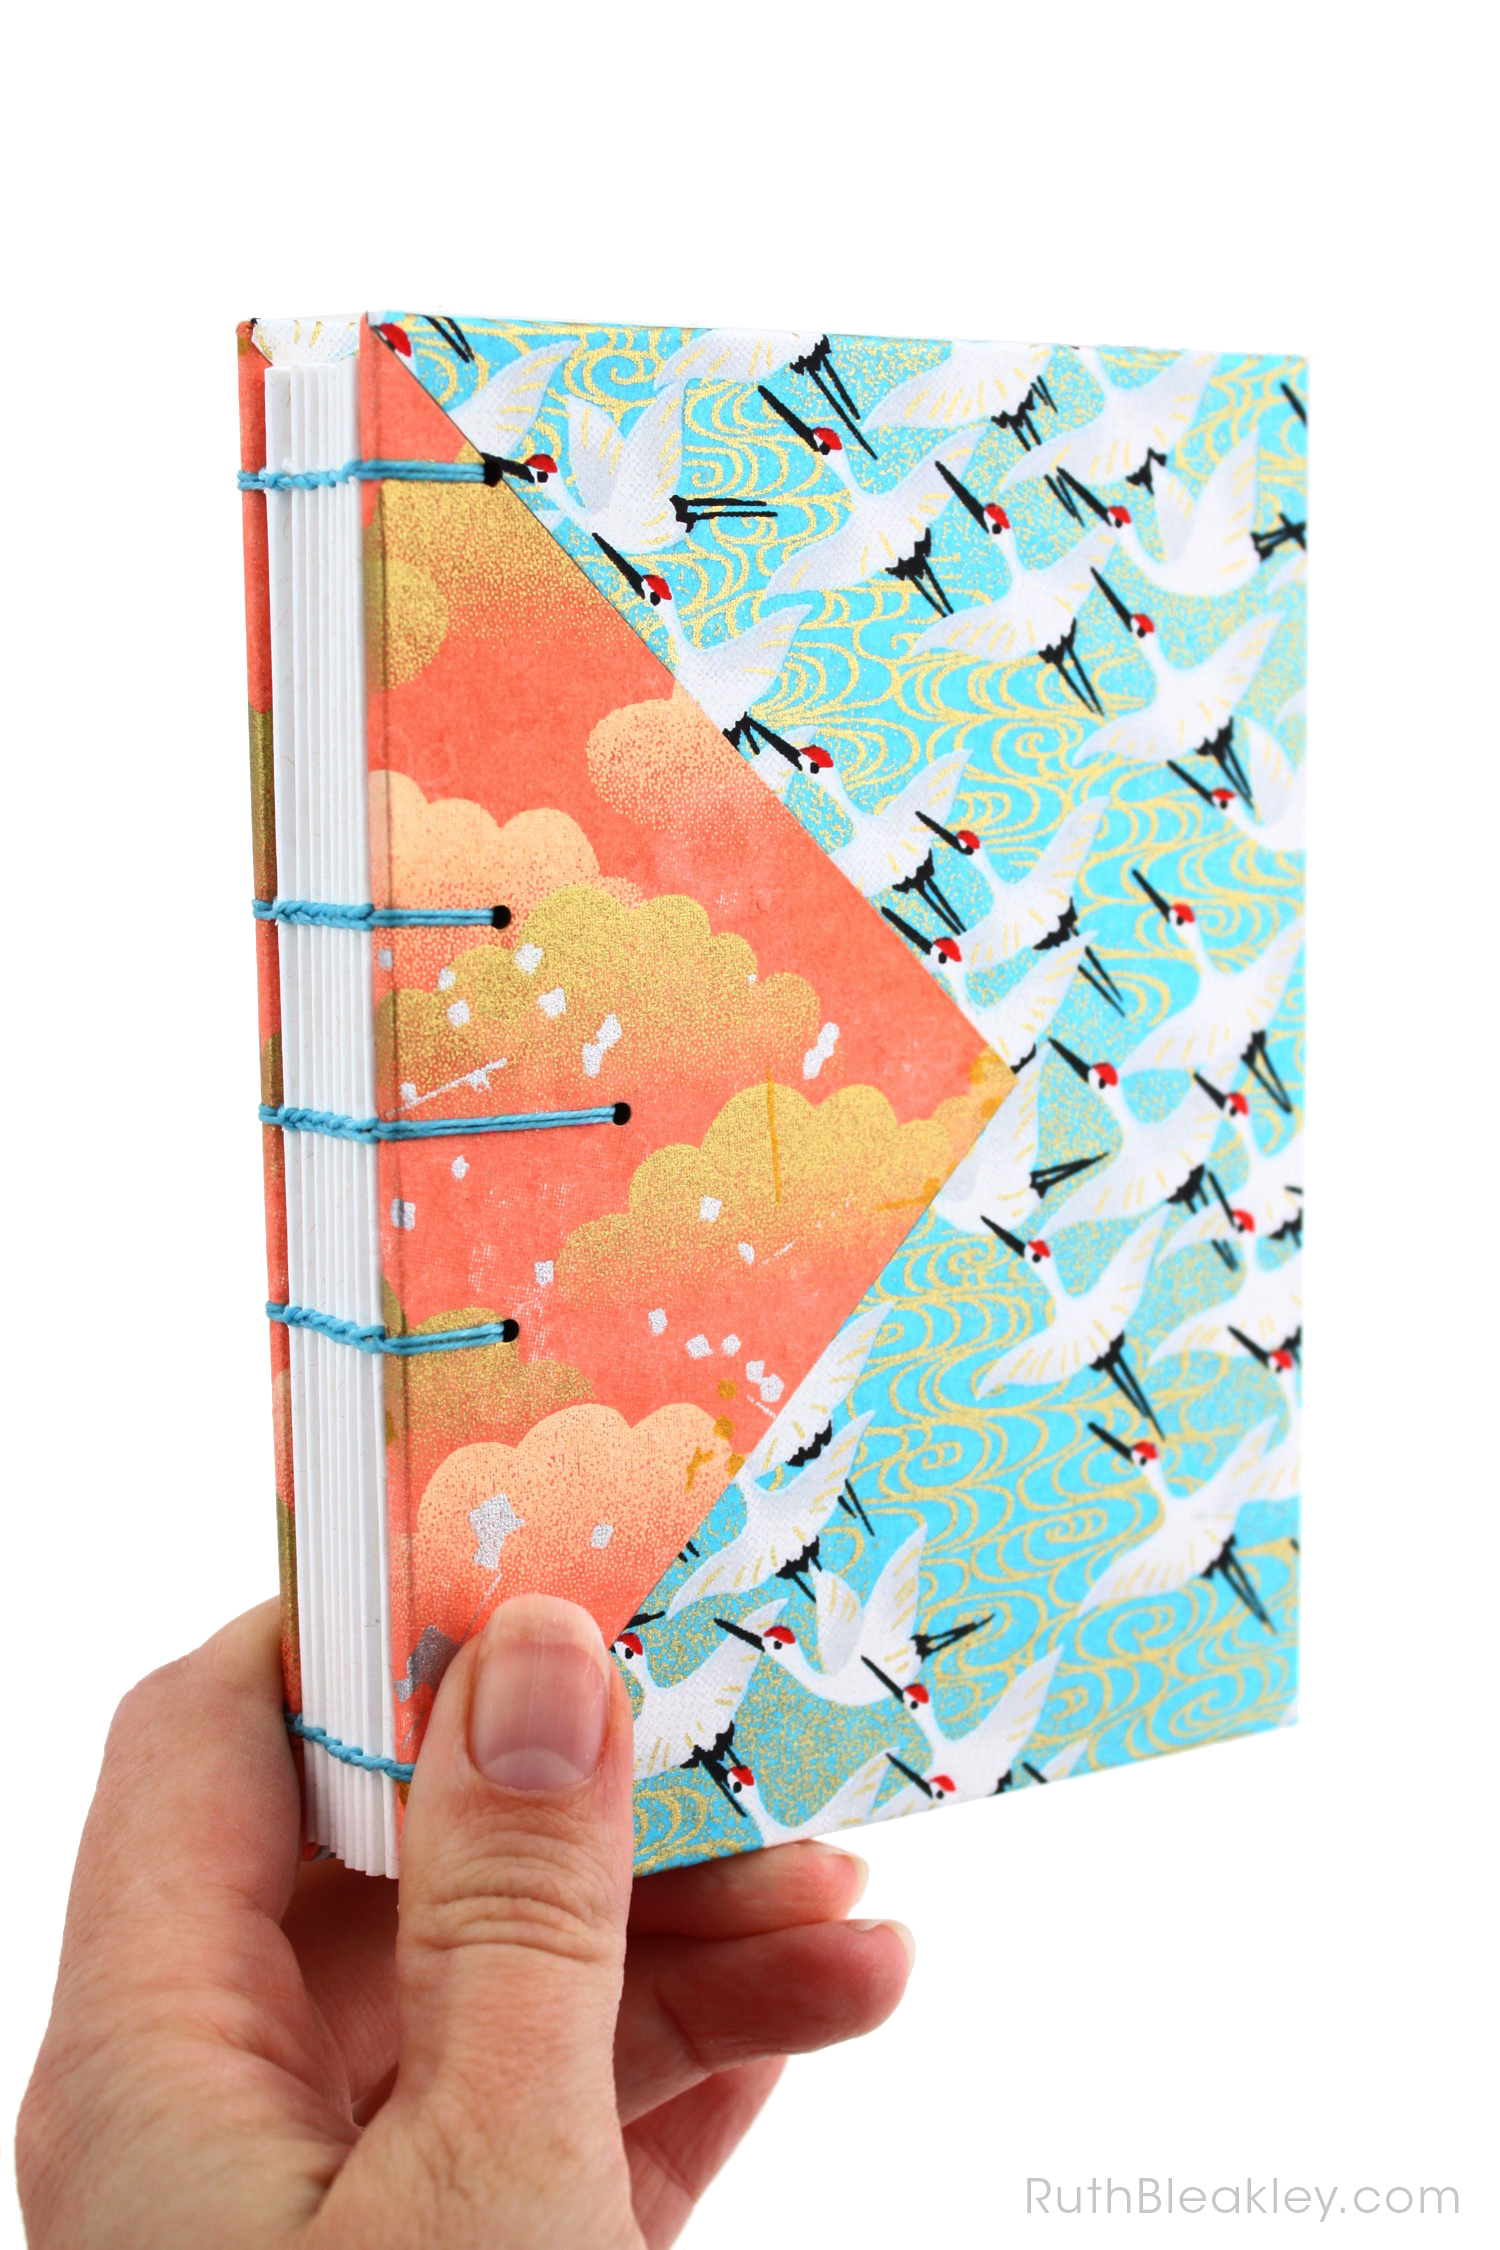 Blue Cranes and Peach Cloud Twin Journals by Ruth Bleakley that lay flat when open - 5